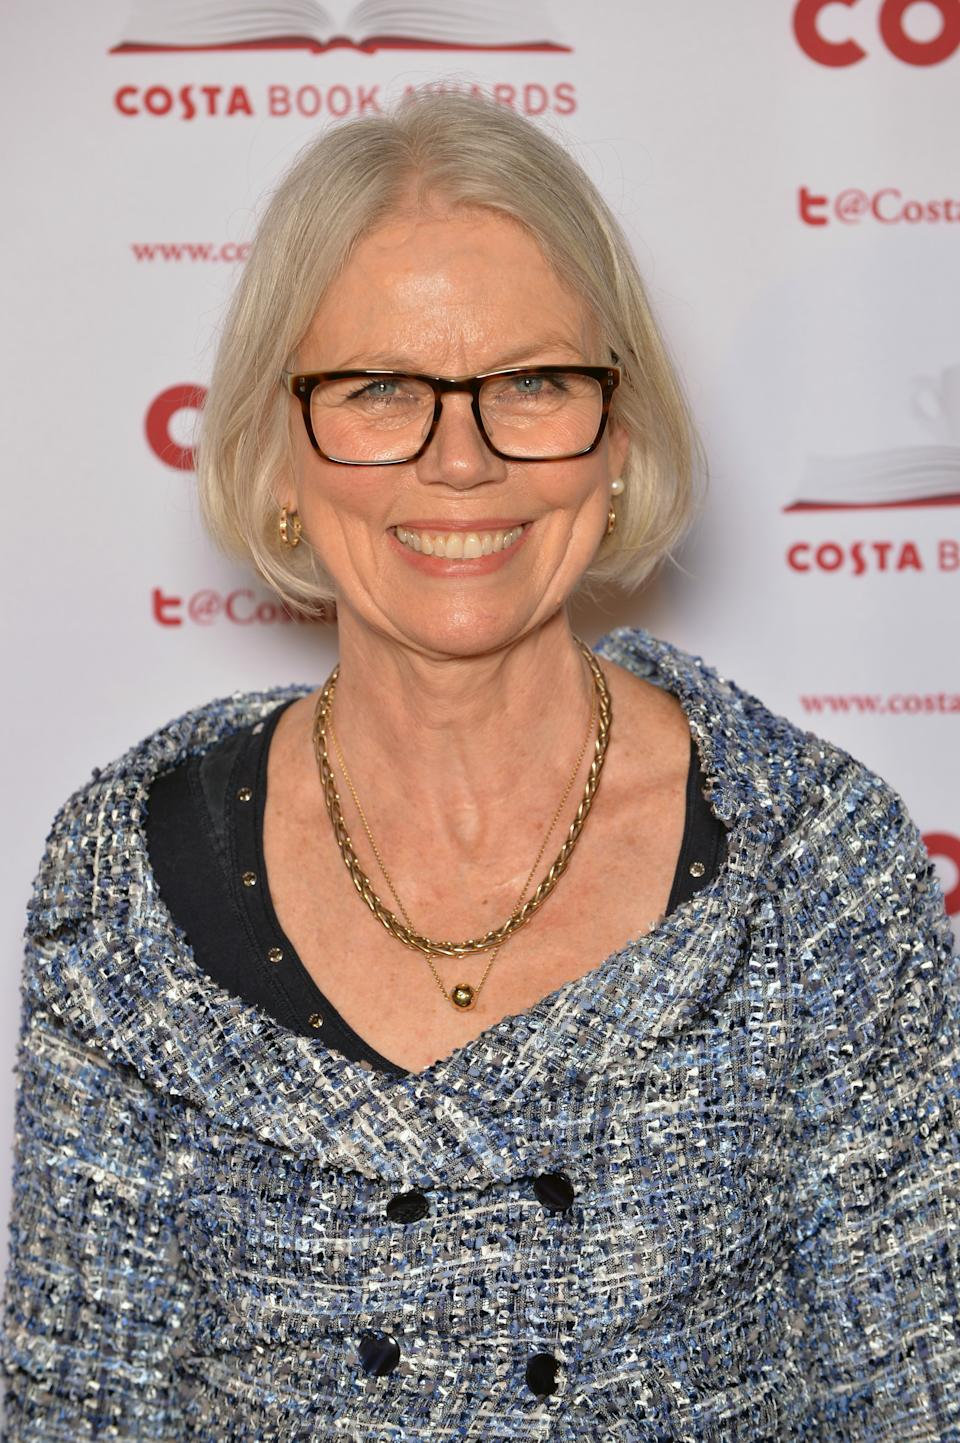 LONDON, UNITED KINGDOM - JANUARY 26: Costa Award final judging panelist Penny Junor pictured tonight at the Costa Book Awards, on January 26, 2016, in London, England.  The Costa Book Awards is one of the UK's most prestigious and popular literary prizes and recognises some of the most enjoyable books of the year, written by authors based in the UK and Ireland.   PHOTOGRAPH BY Richard Kendal / Barcroft Media  UK Office, London. T +44 845 370 2233 W www.barcroftmedia.com  USA Office, New York City. T +1 212 796 2458 W www.barcroftusa.com  Indian Office, Delhi. T +91 11 4053 2429 W www.barcroftindia.com (Photo credit should read Richard Kendal / Barcroft Media / Barcroft Media via Getty Images)